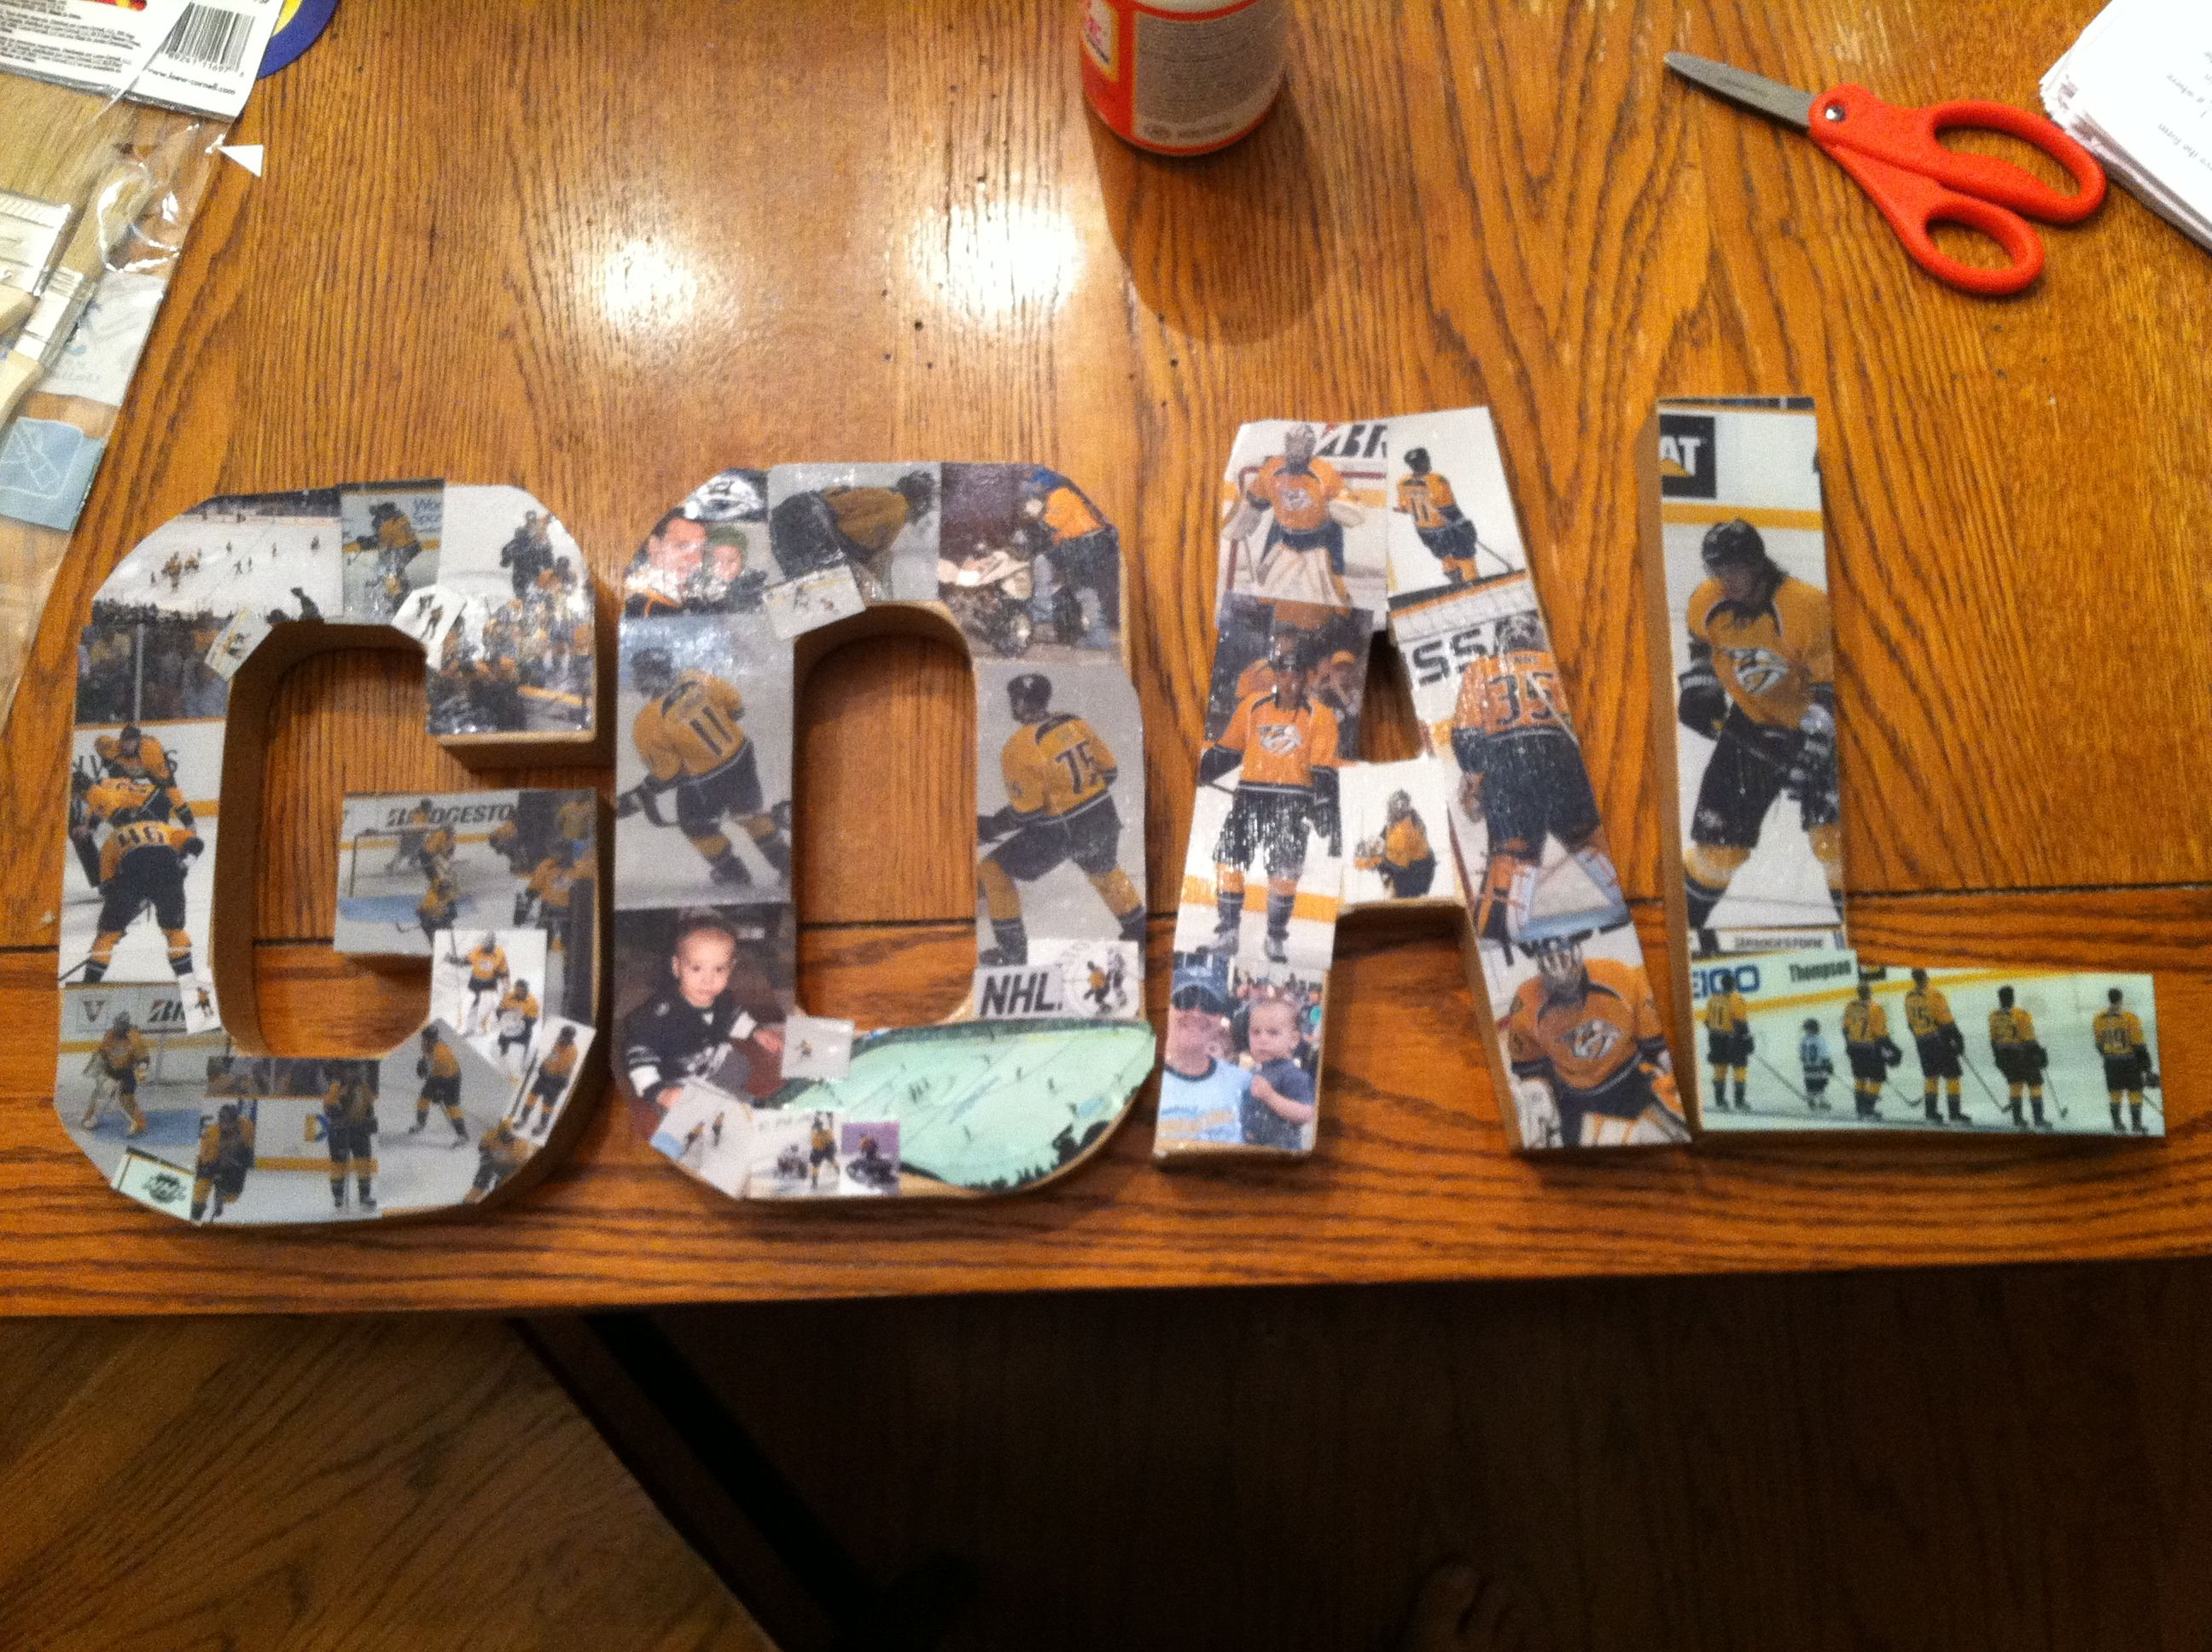 Boys hockey bedroom ideas - Made These Out Of Cardboard Letters From The Craft Store Pictures And Modge Podge Soccer Craftssoccer Bedroomhockey